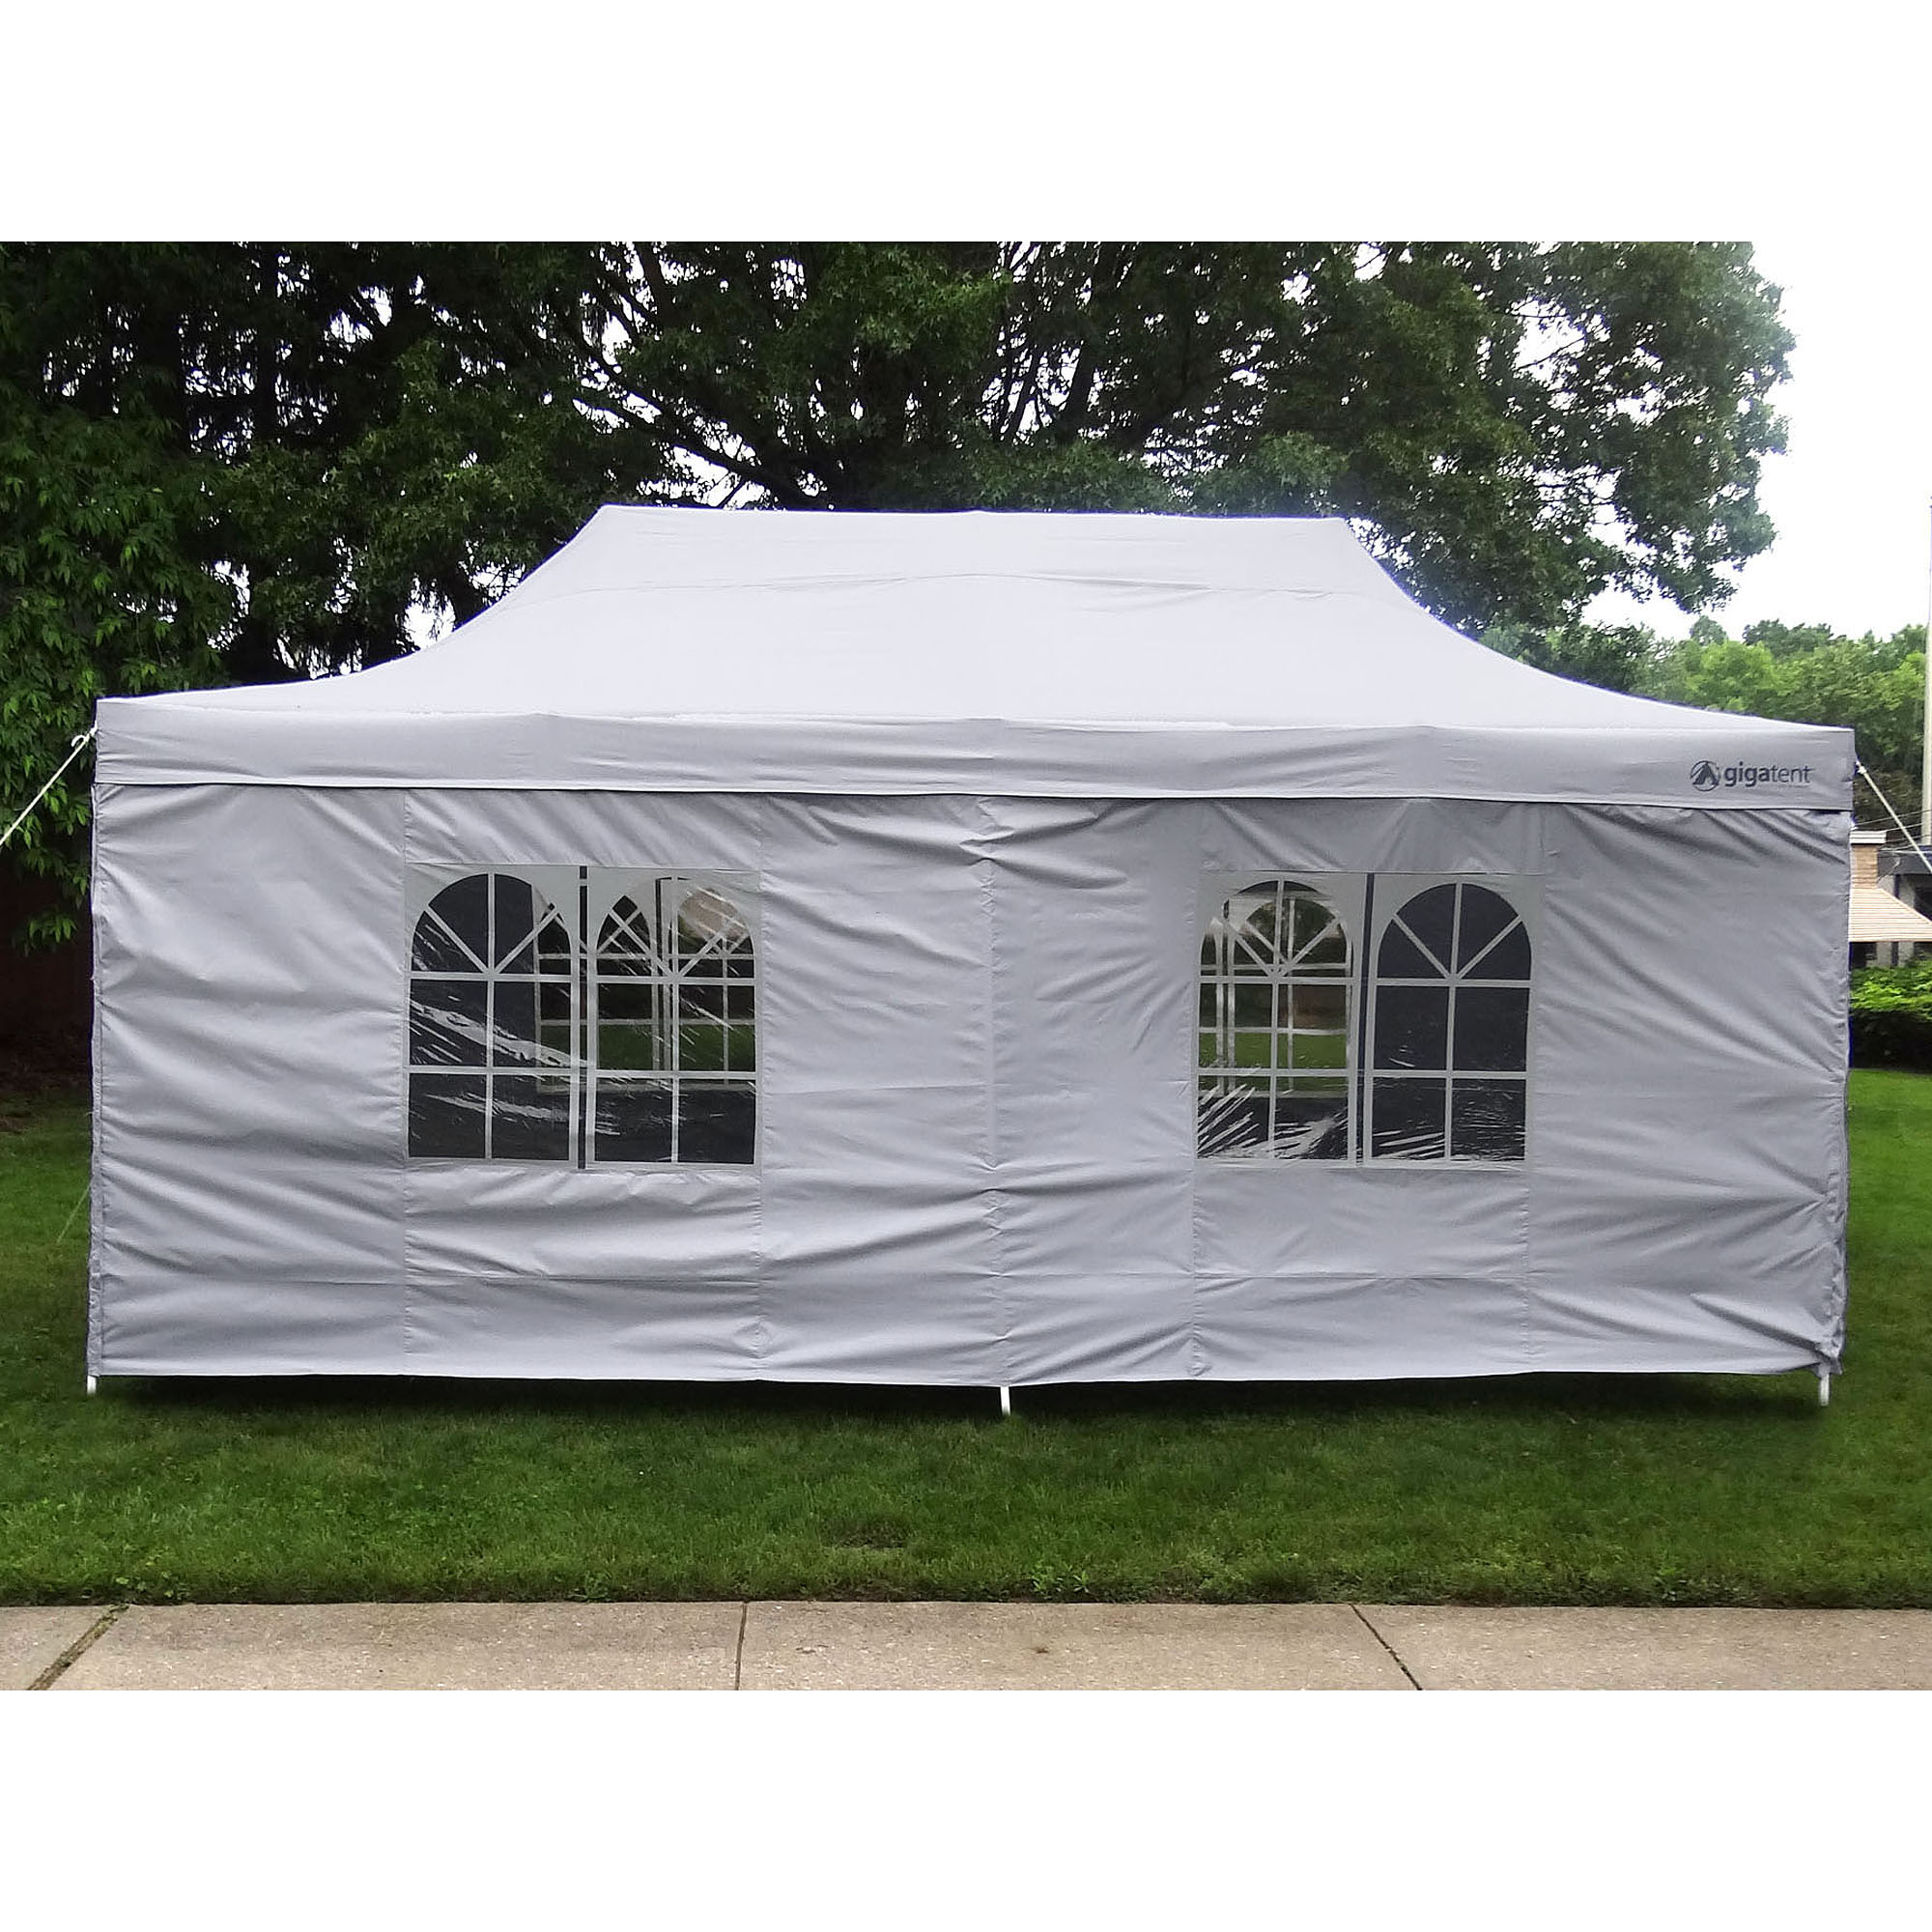 hight resolution of palm springs outdoor 10 x 20 wedding party tent gazebo canopy with sidewalls walmart com